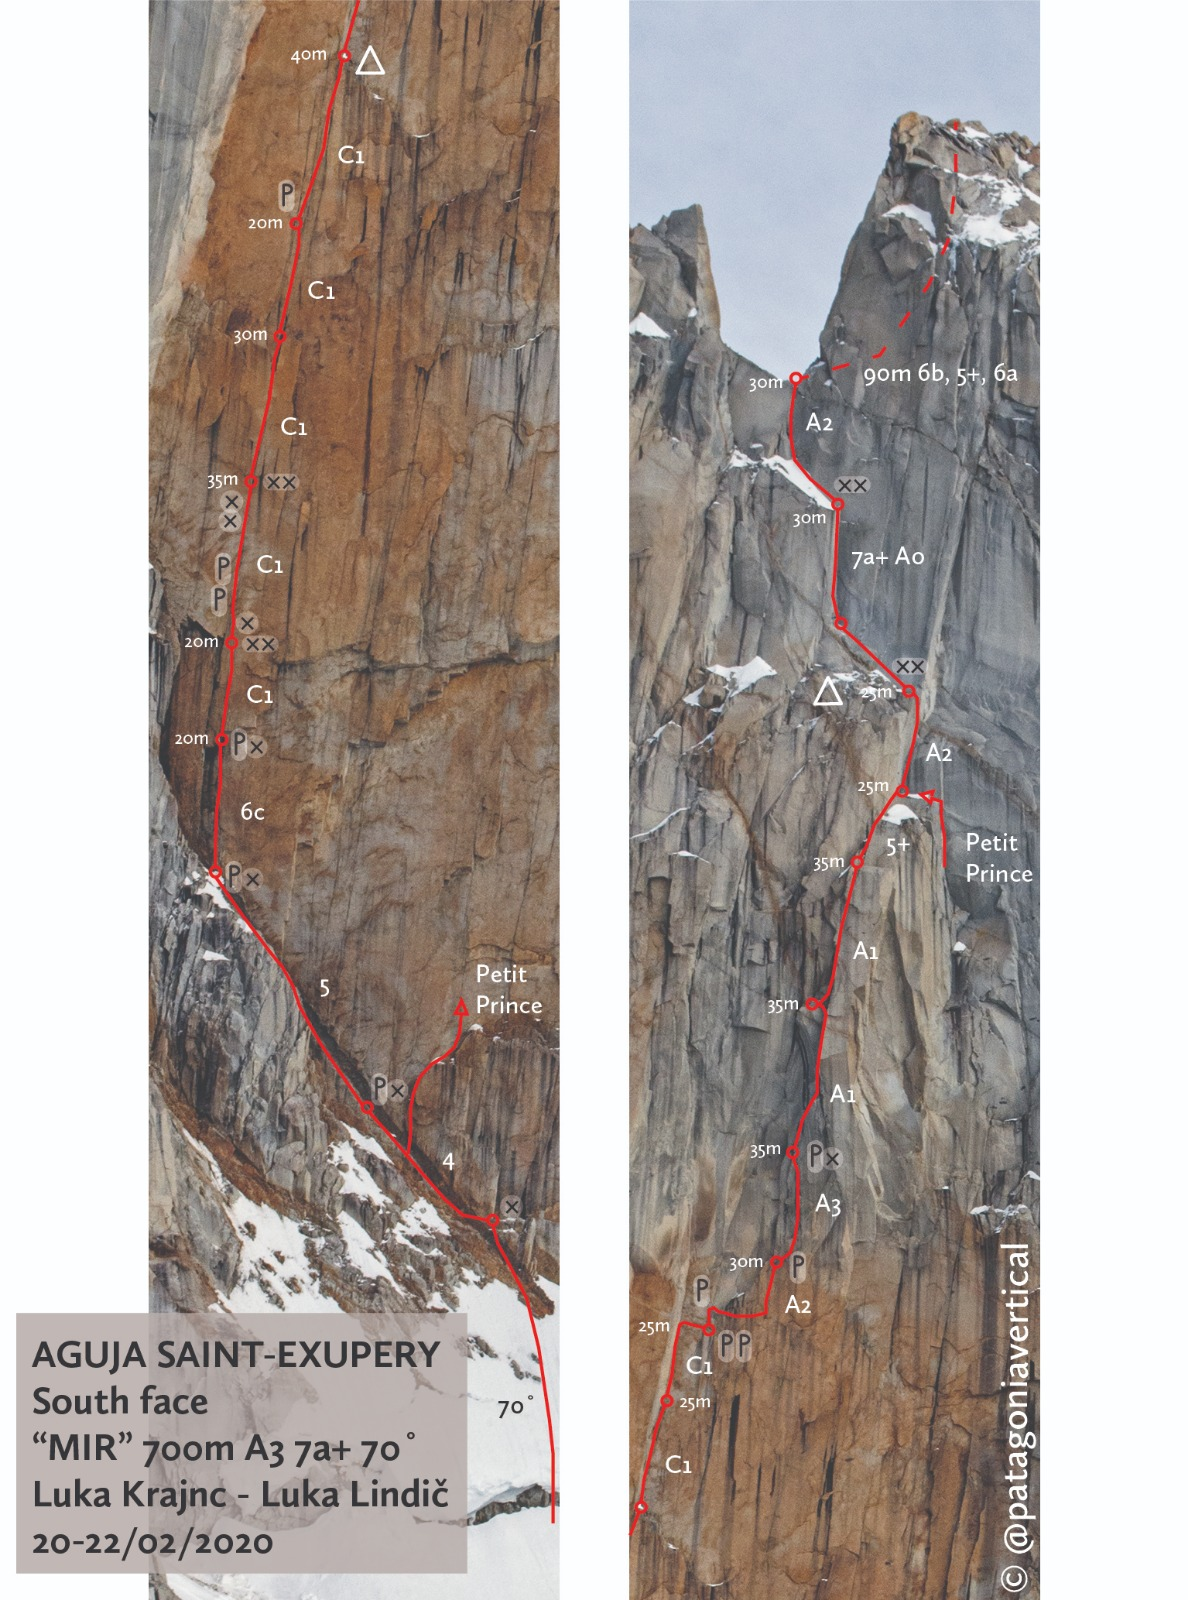 A detailed photo-topo of the route Mir (500m, 6c+ A3 70°) on the south face of Aguja St. Exupery.